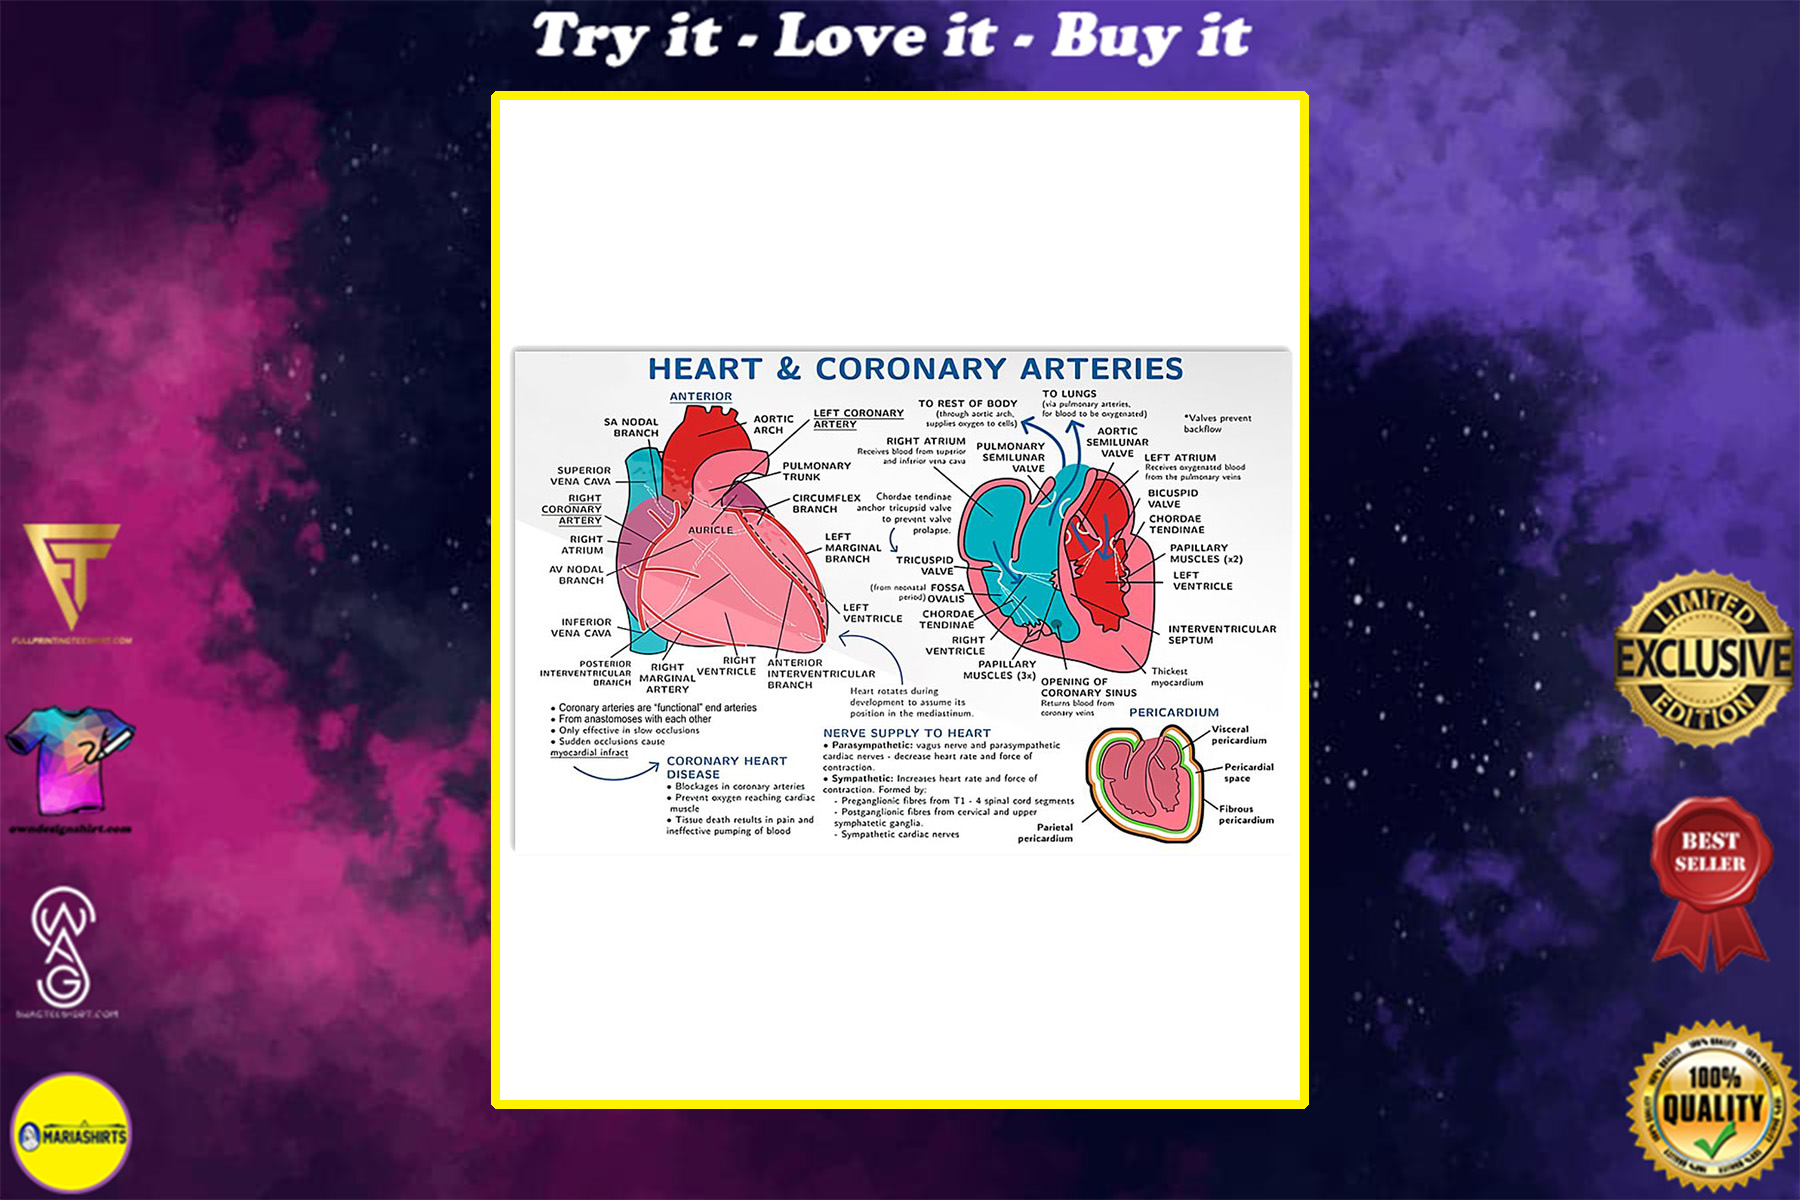 heart and coronary arteries cardiologist poster